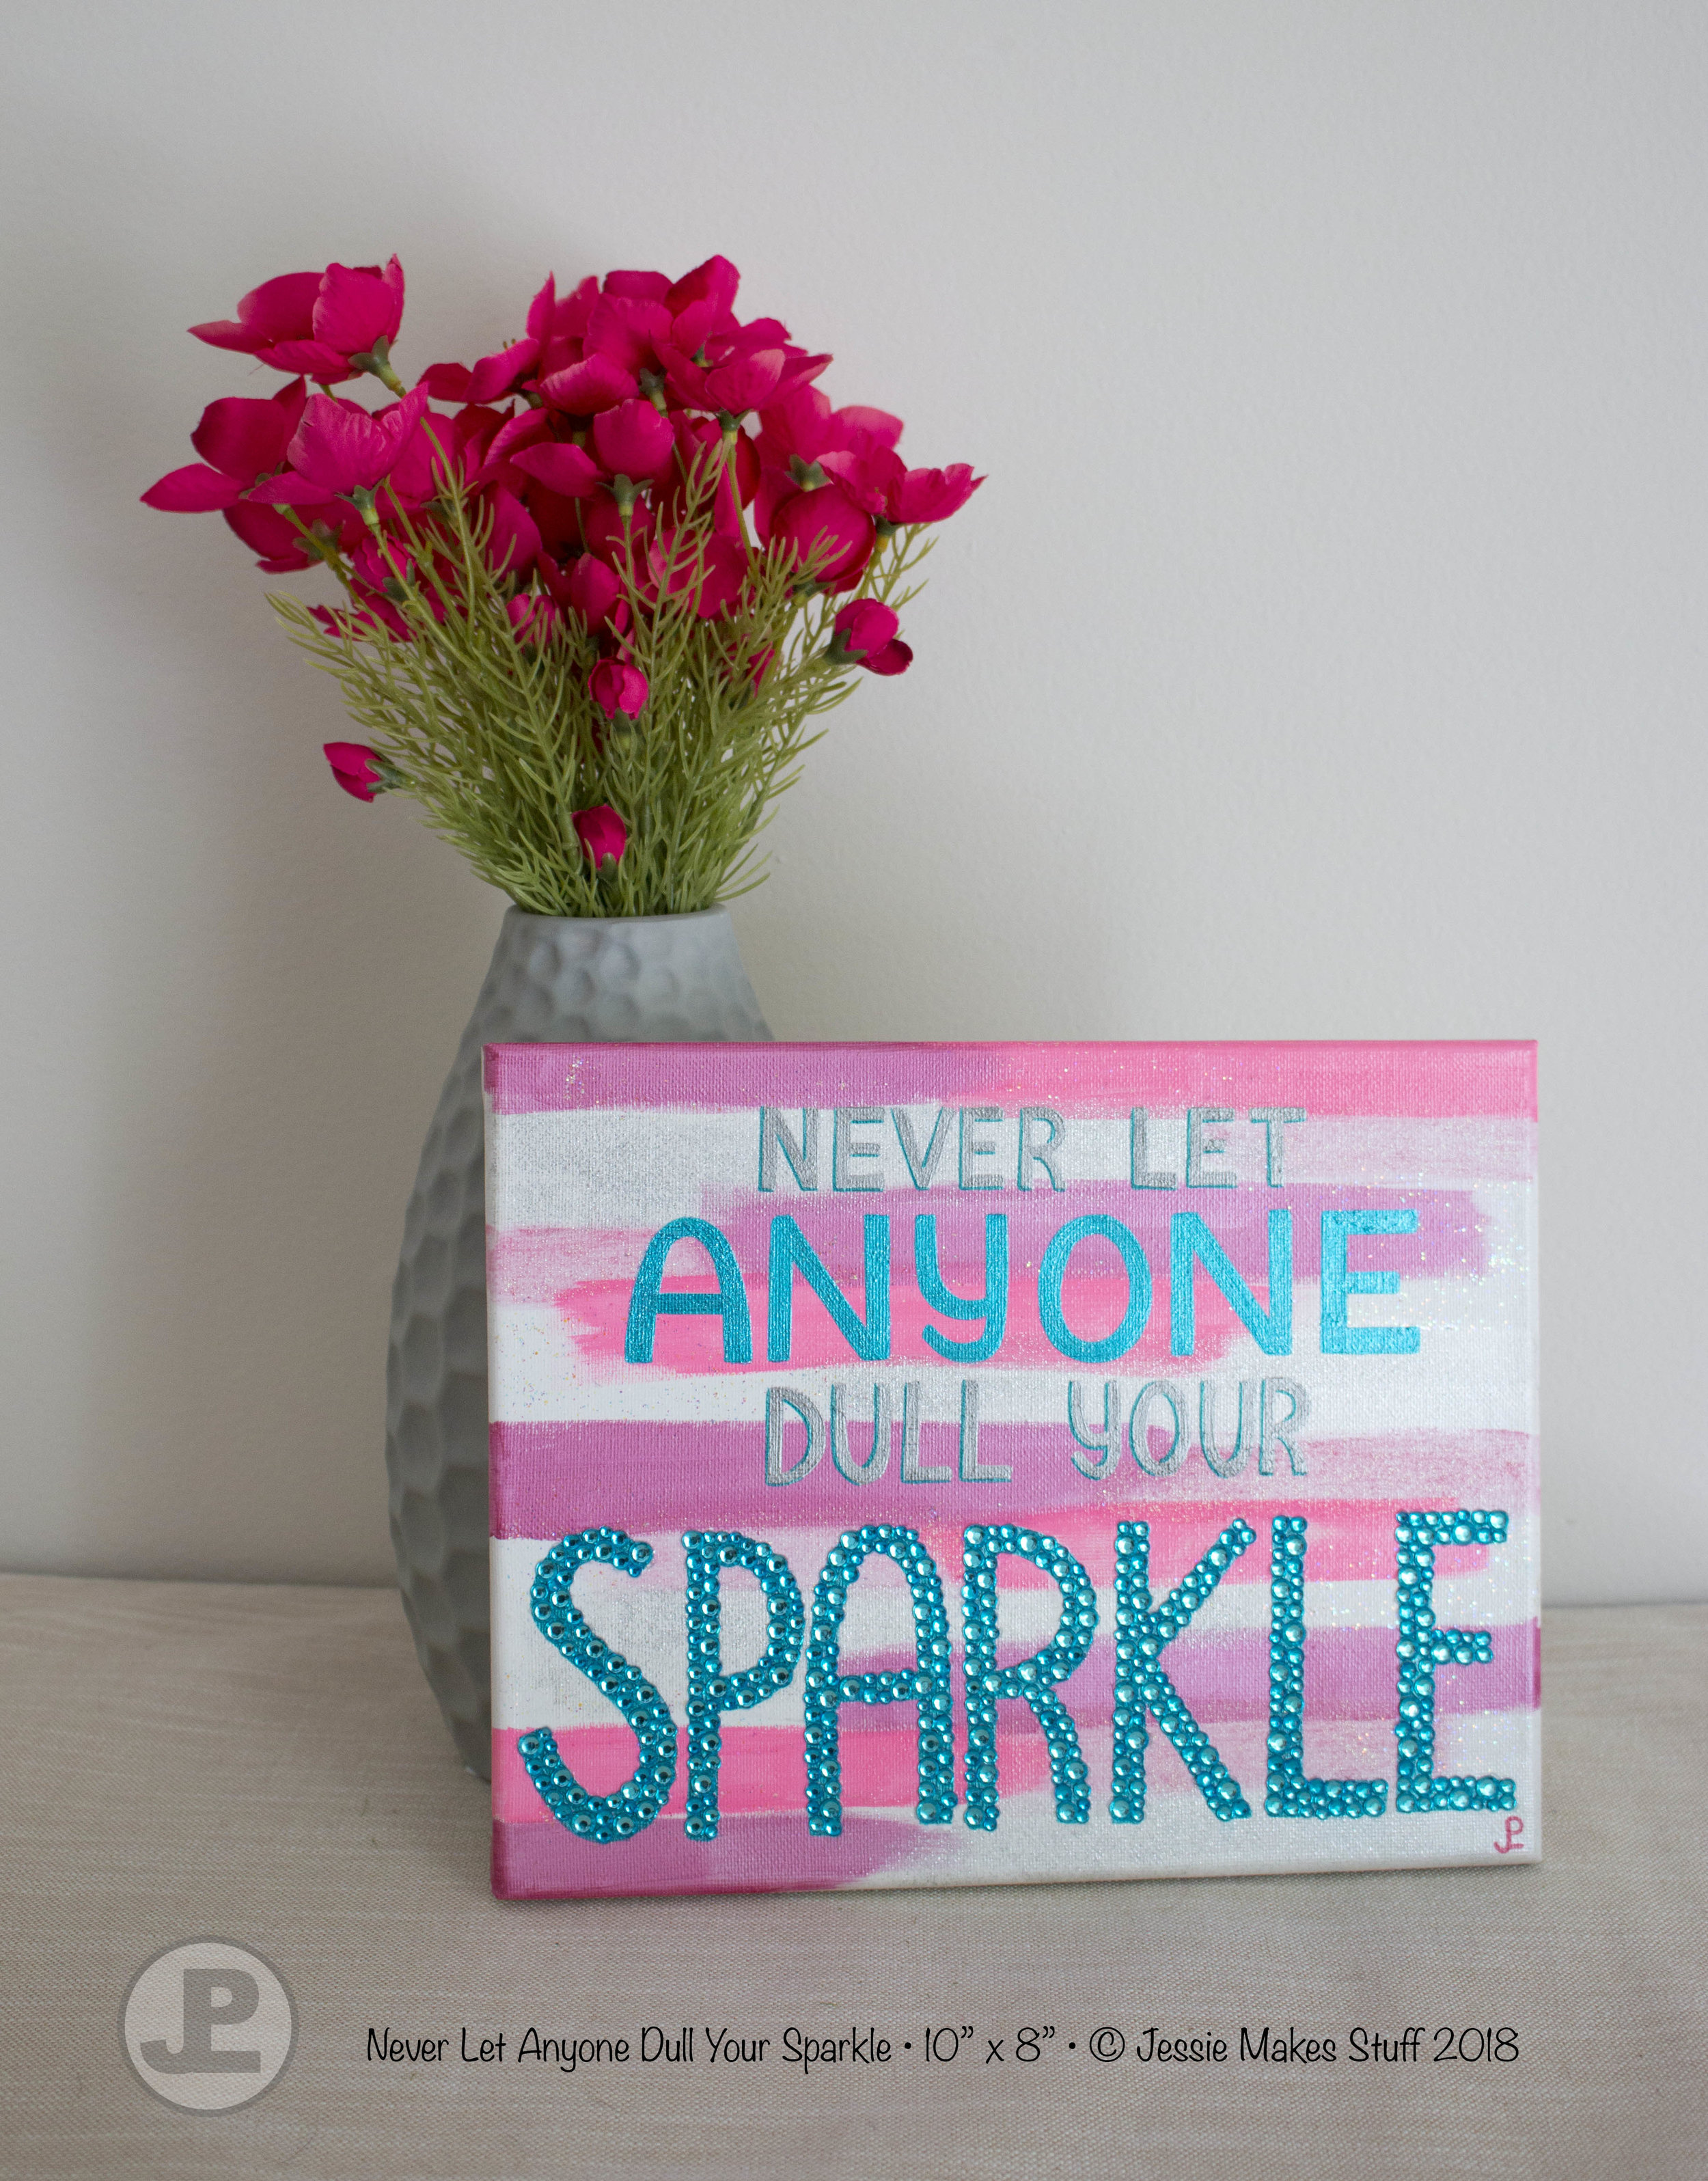 Never_Let_Anyone_Dull_Your_Sparkle_PinkTeal_8x10_Artwork_Custom_Mixed_Media.jpg